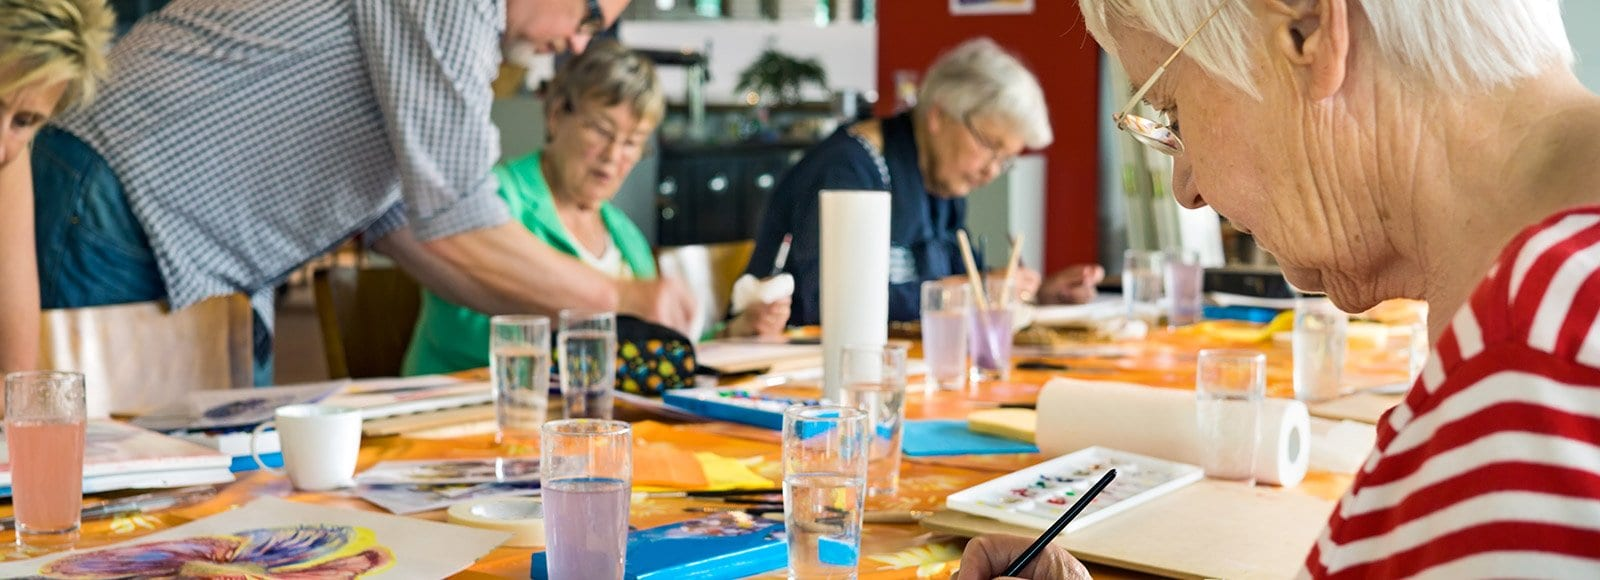 Senior woman water coloring class.